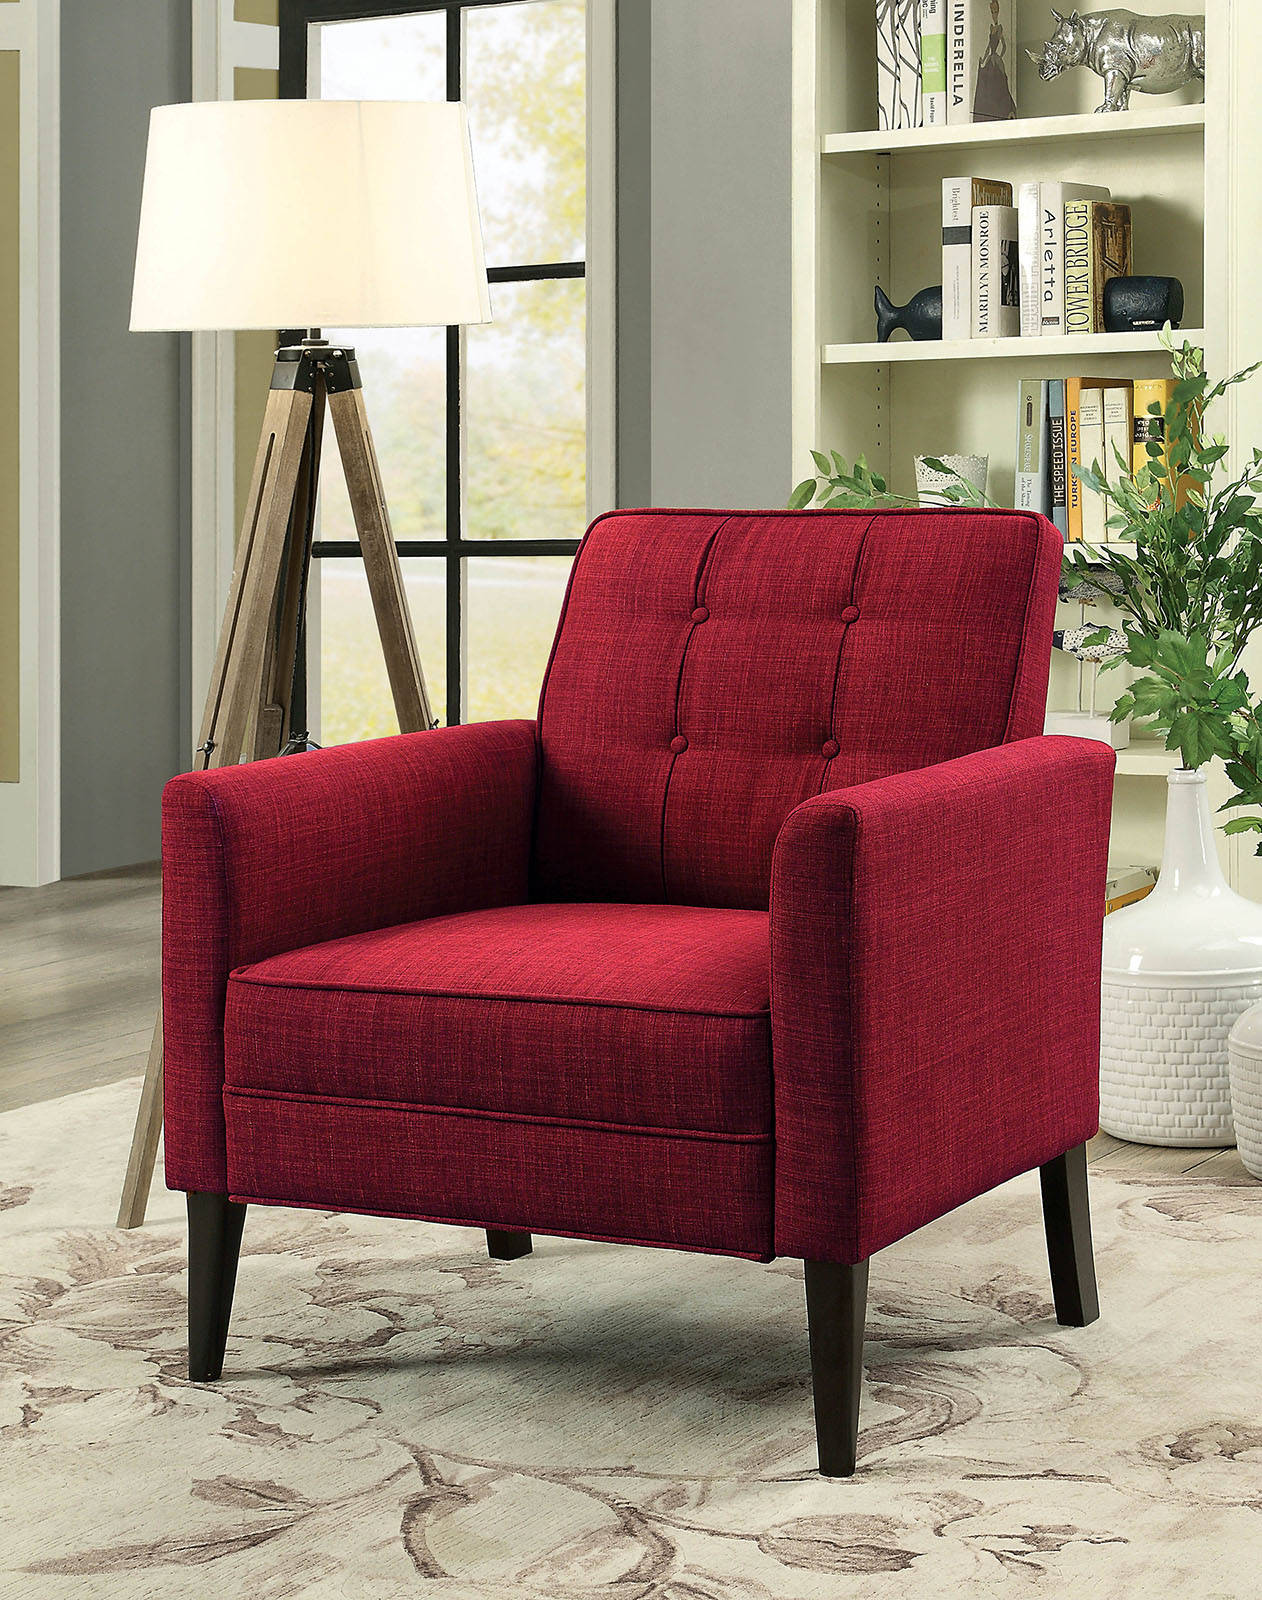 Furniture of America Amelie Red Accent Chair   The Classy Home